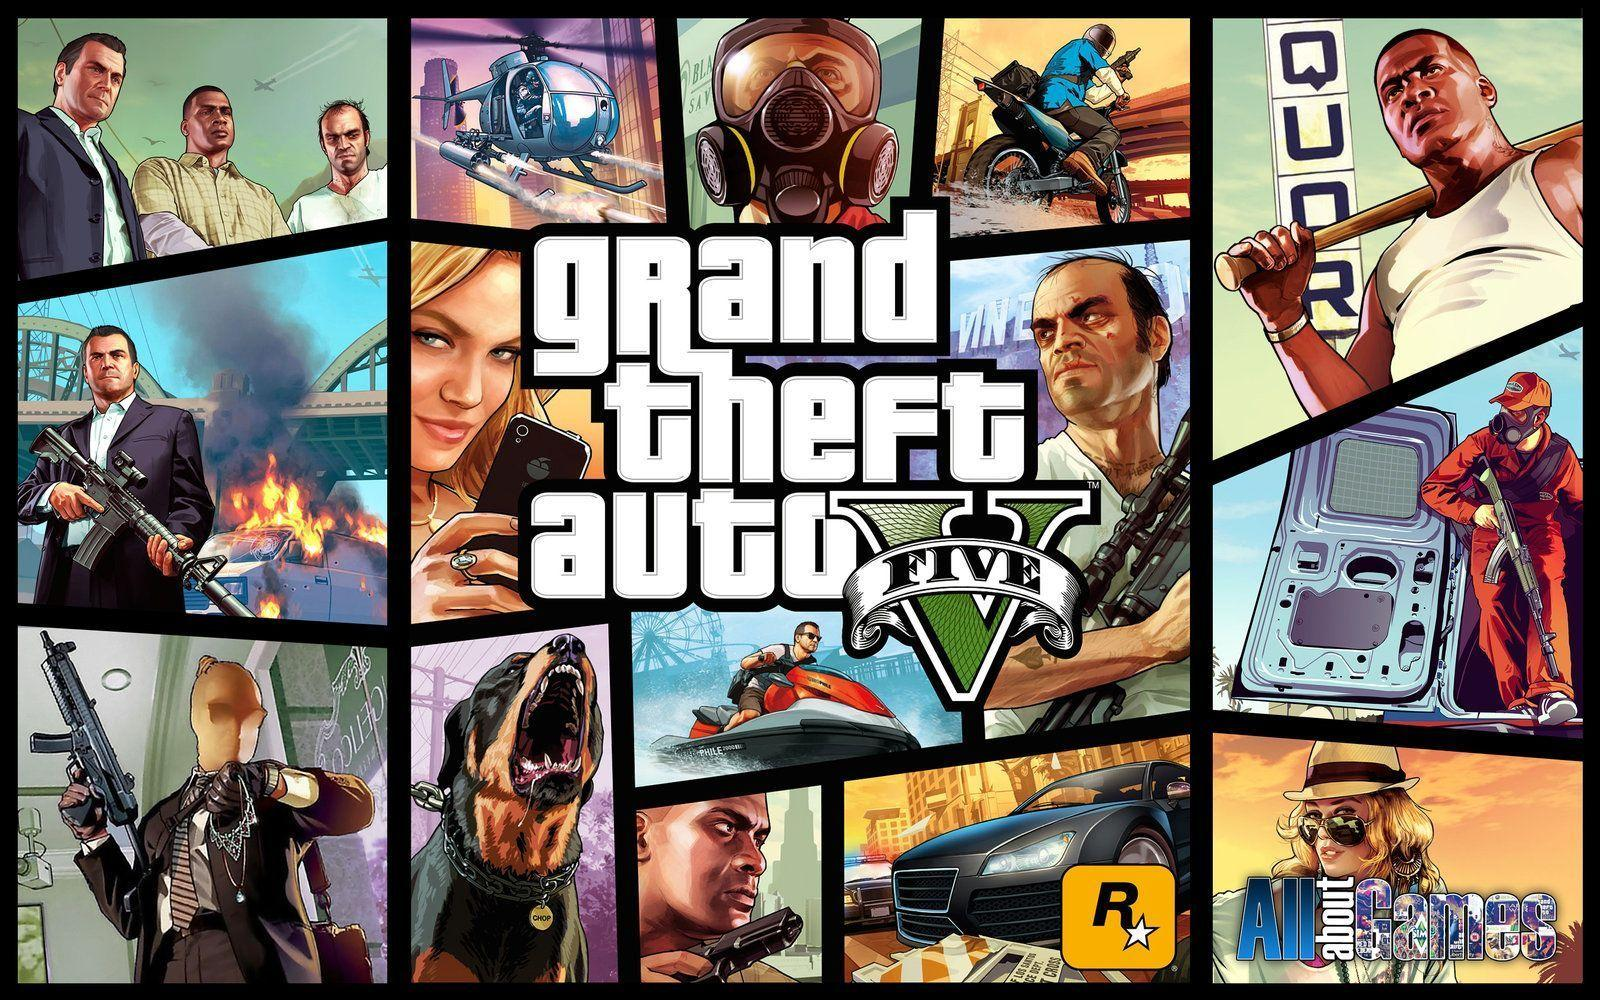 Grand Theft Auto 5 Hd Wallpapers Group 62